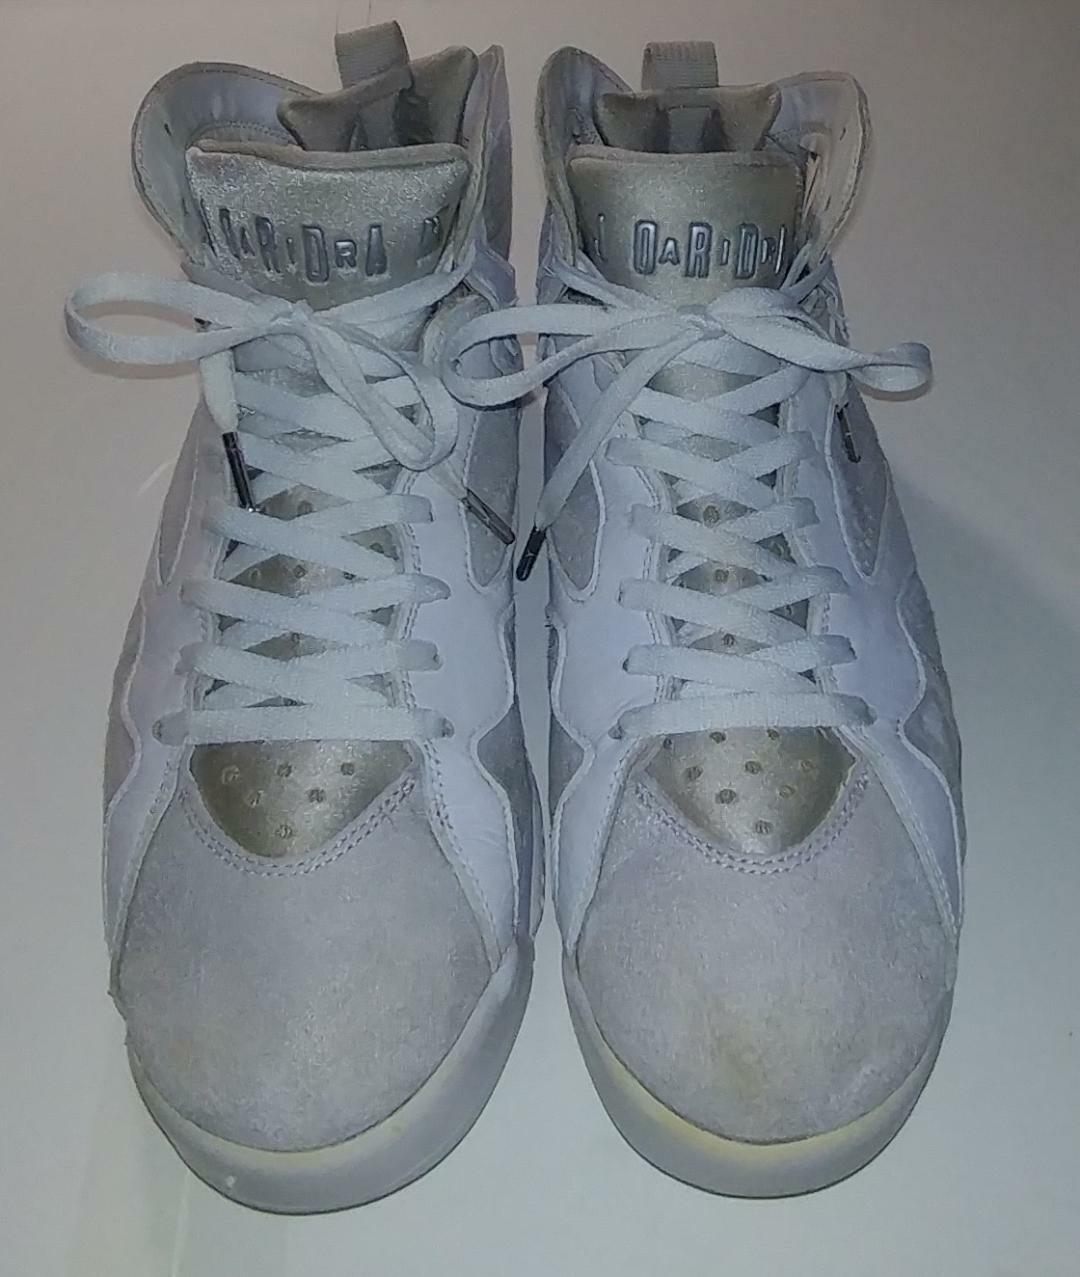 NIKE JORDAN VII 7 RETRO Size 12 PURE PLATINUM WHITE GREY 304775 120 Used